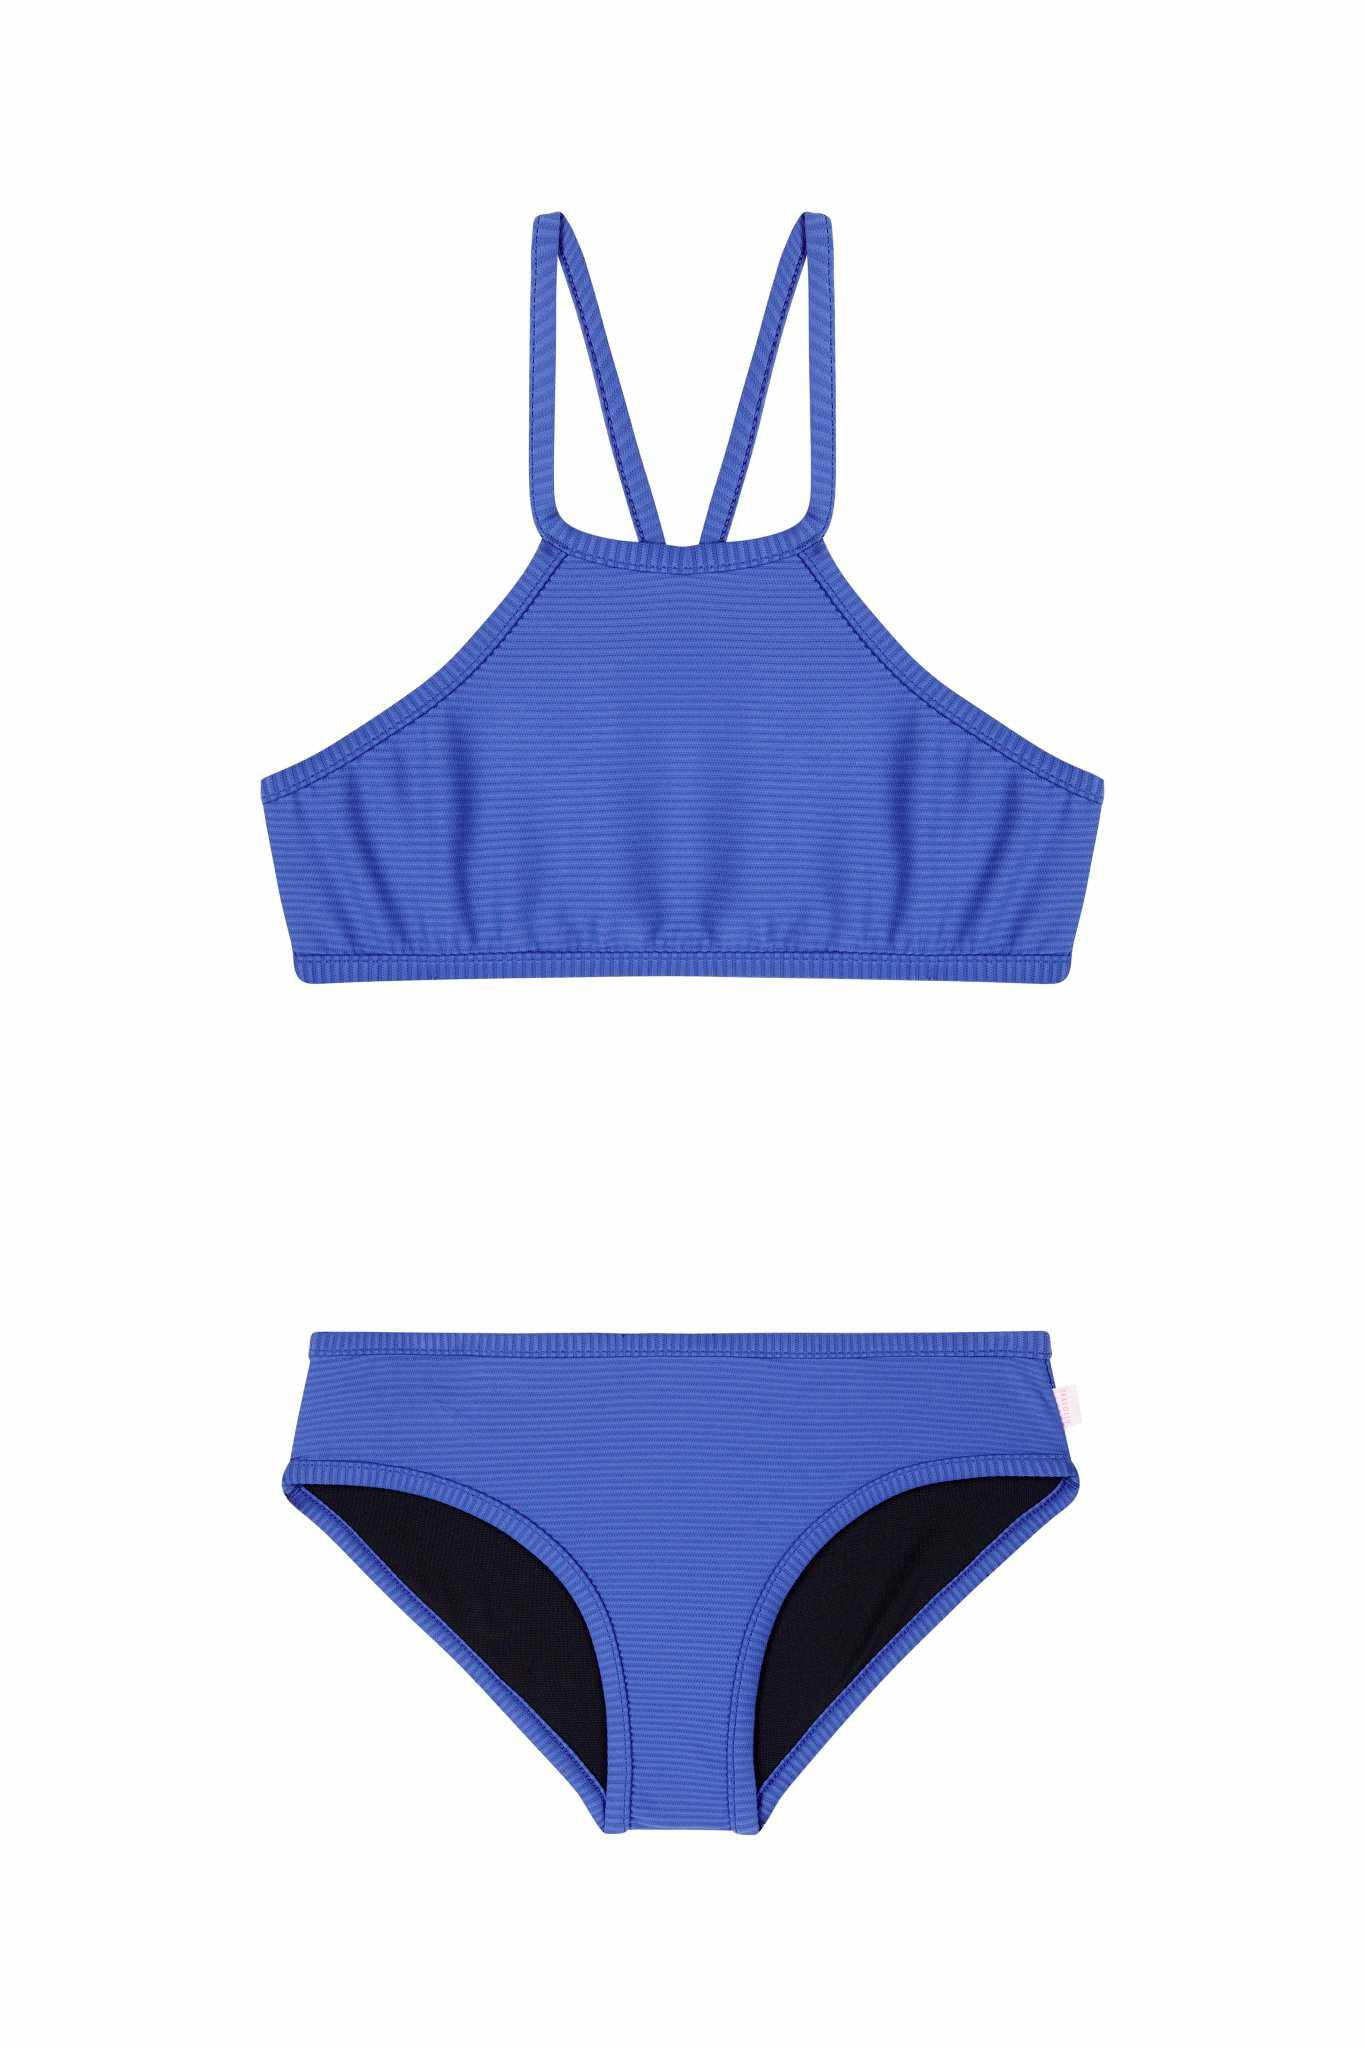 Seafolly Girls Apron Tankini - Summer Essential